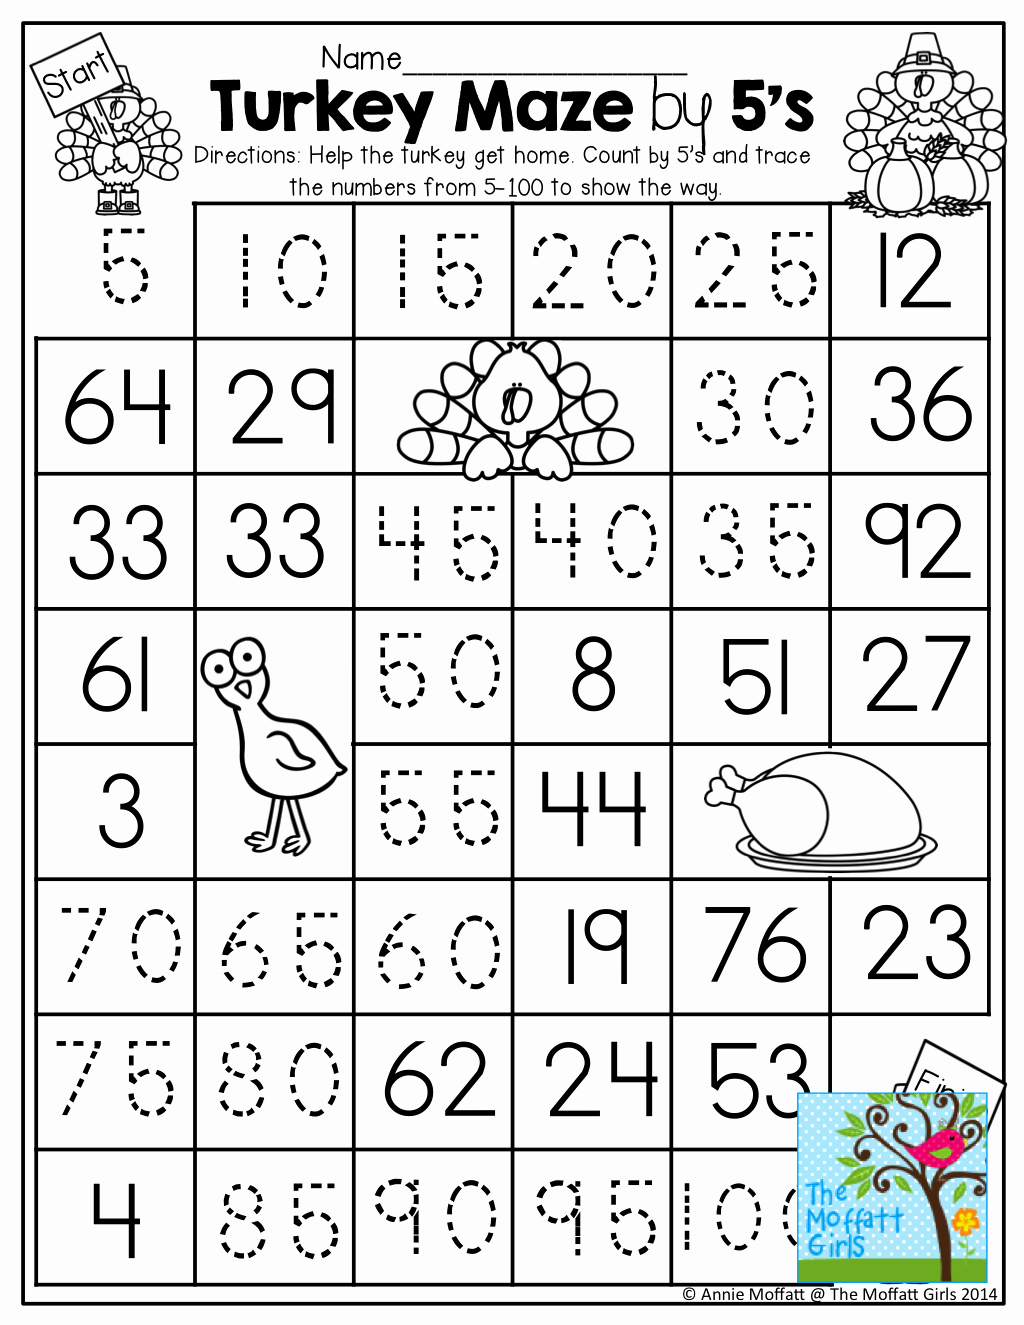 Counting by 5s Worksheet Unique Count by 5 S Worksheet by Tracing the Path From the Turkey